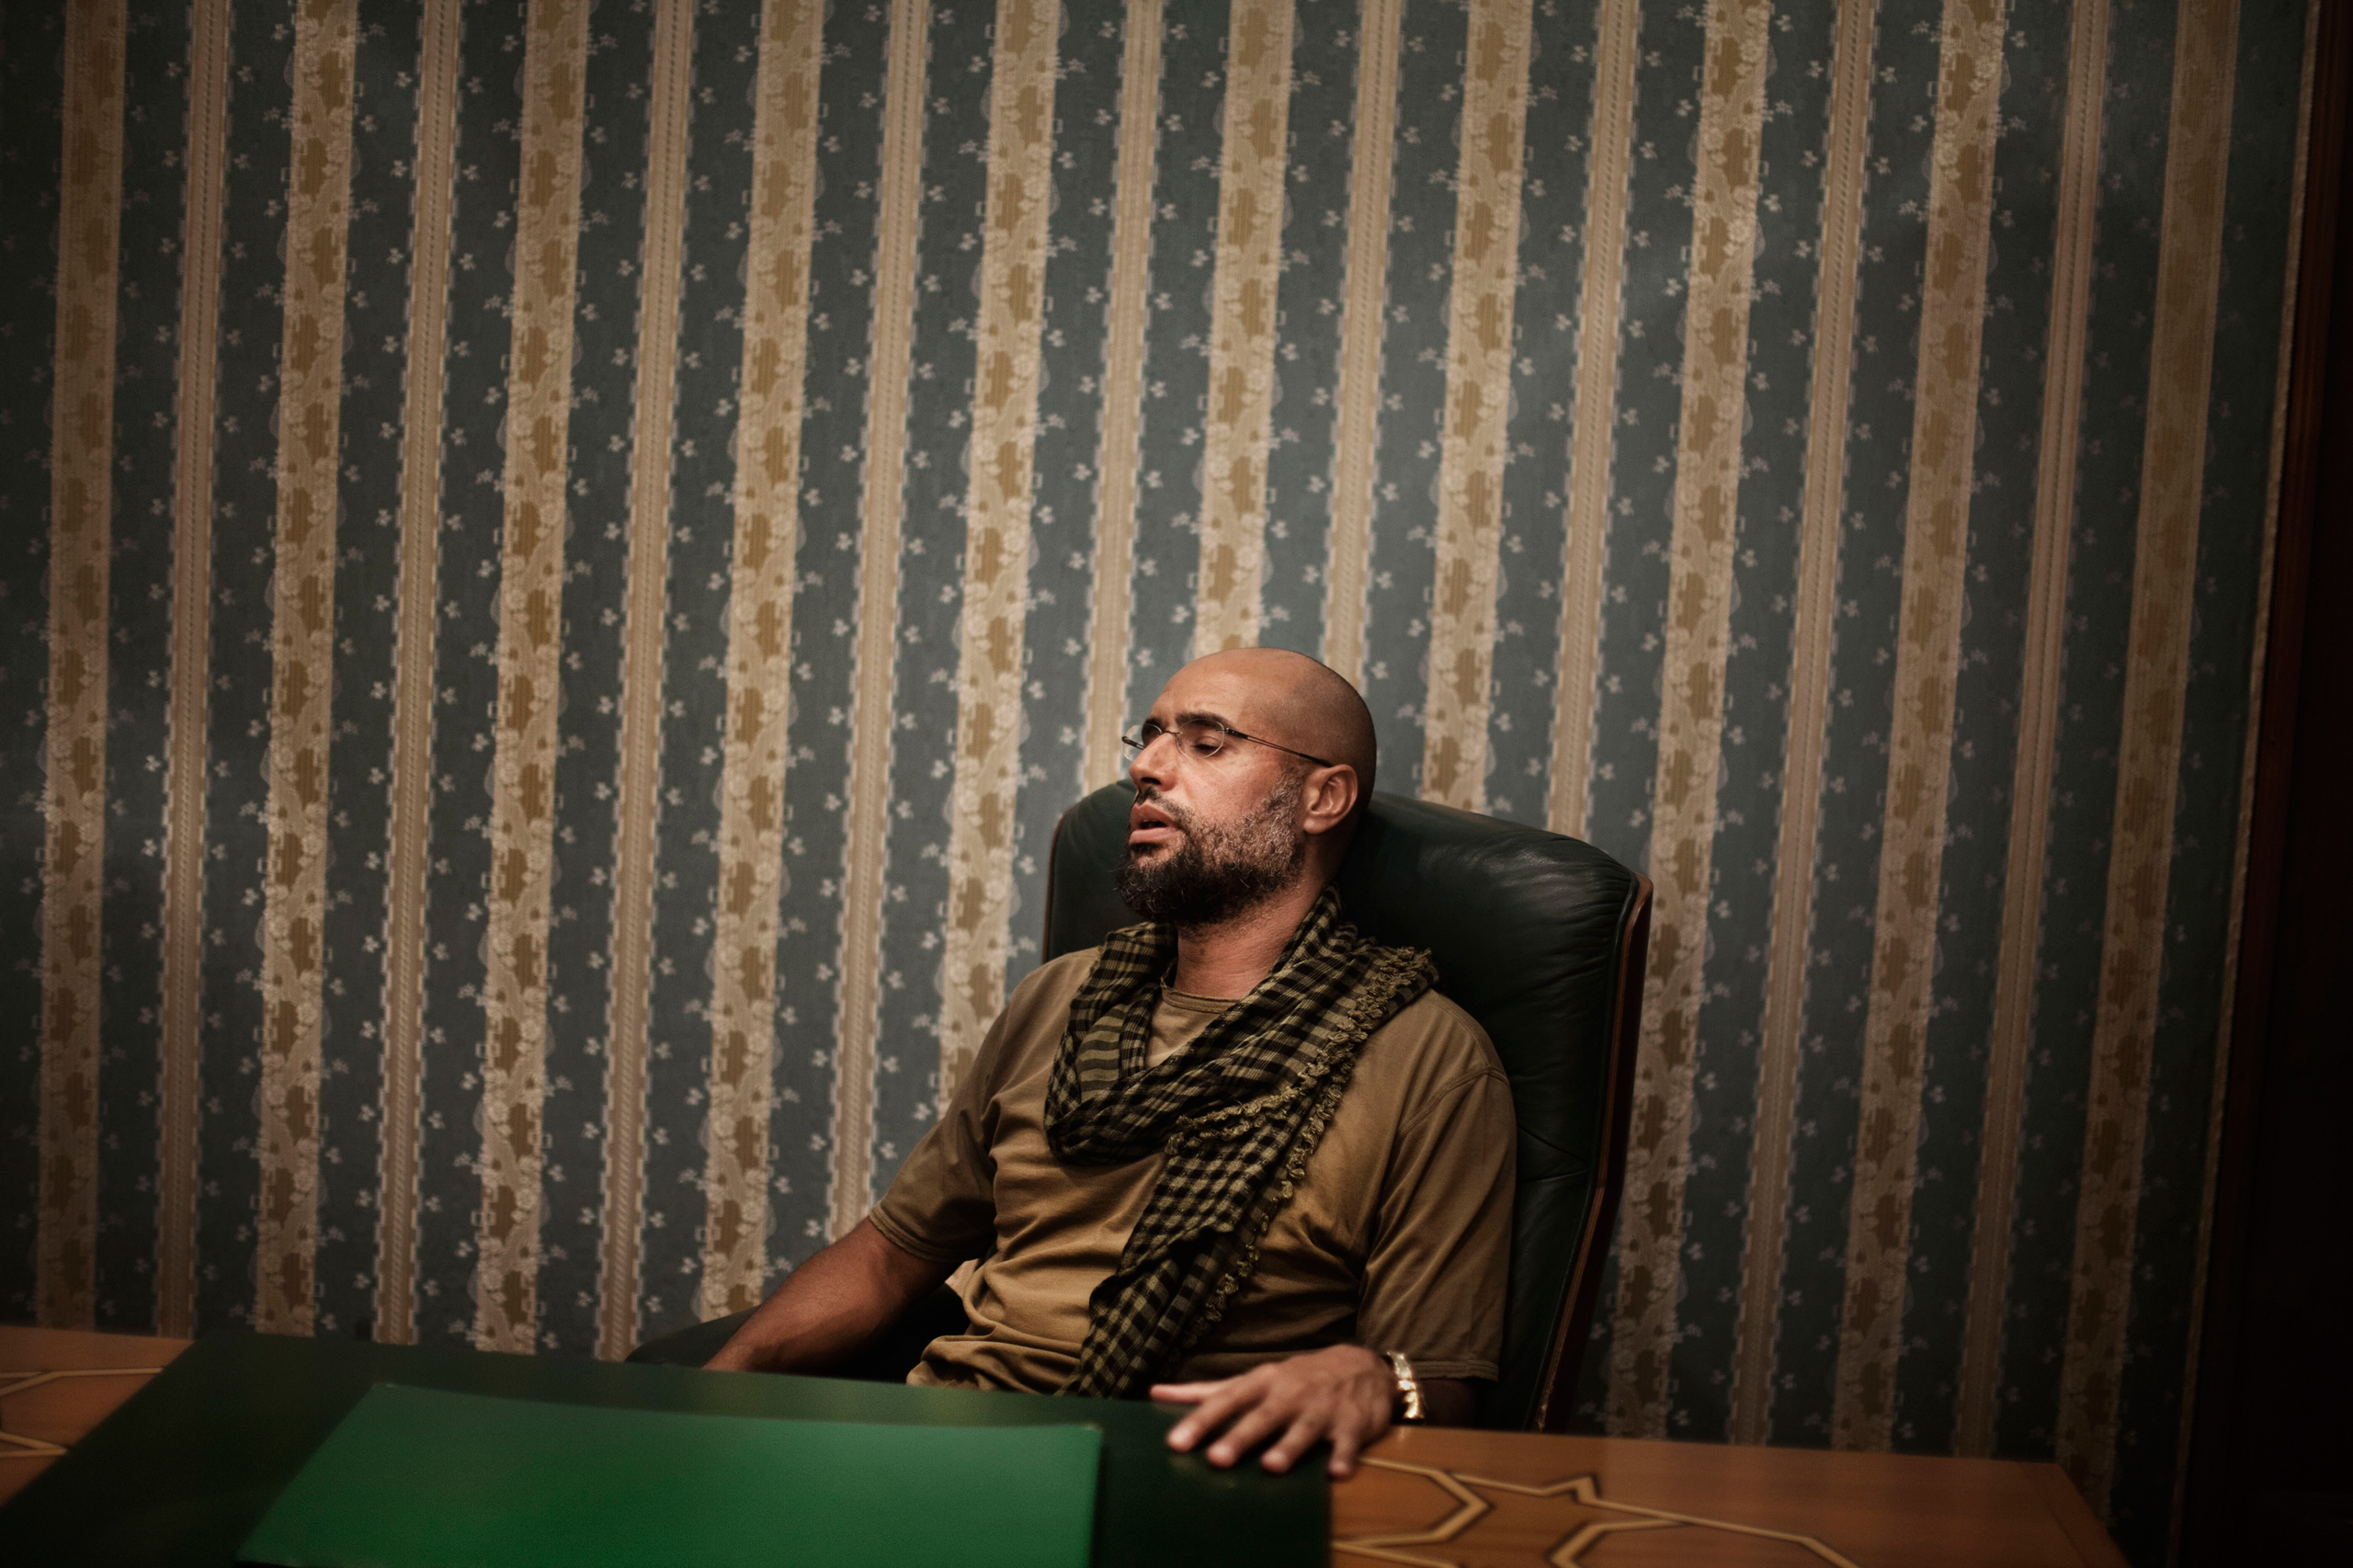 Saif al-Islam Gaddafi, son of Colonel Muammar Gaddafi, photographed in Tripoli, Libya on August 2, 2011 during an interview shortly before the city's fall.